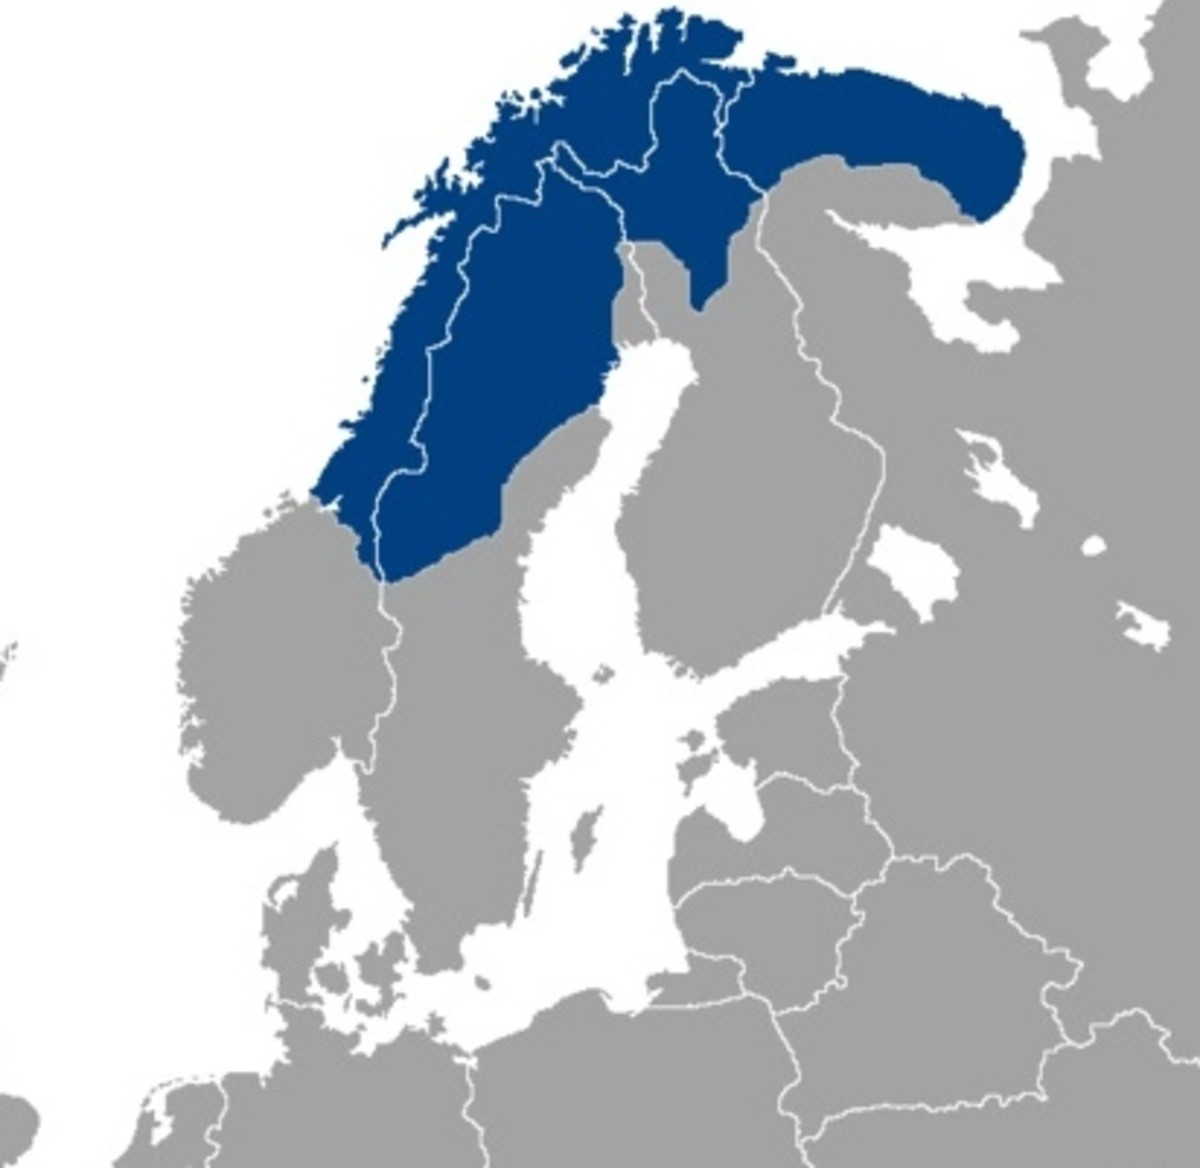 Saami territory spreads from Norway and Sweden to Finland and Russia.